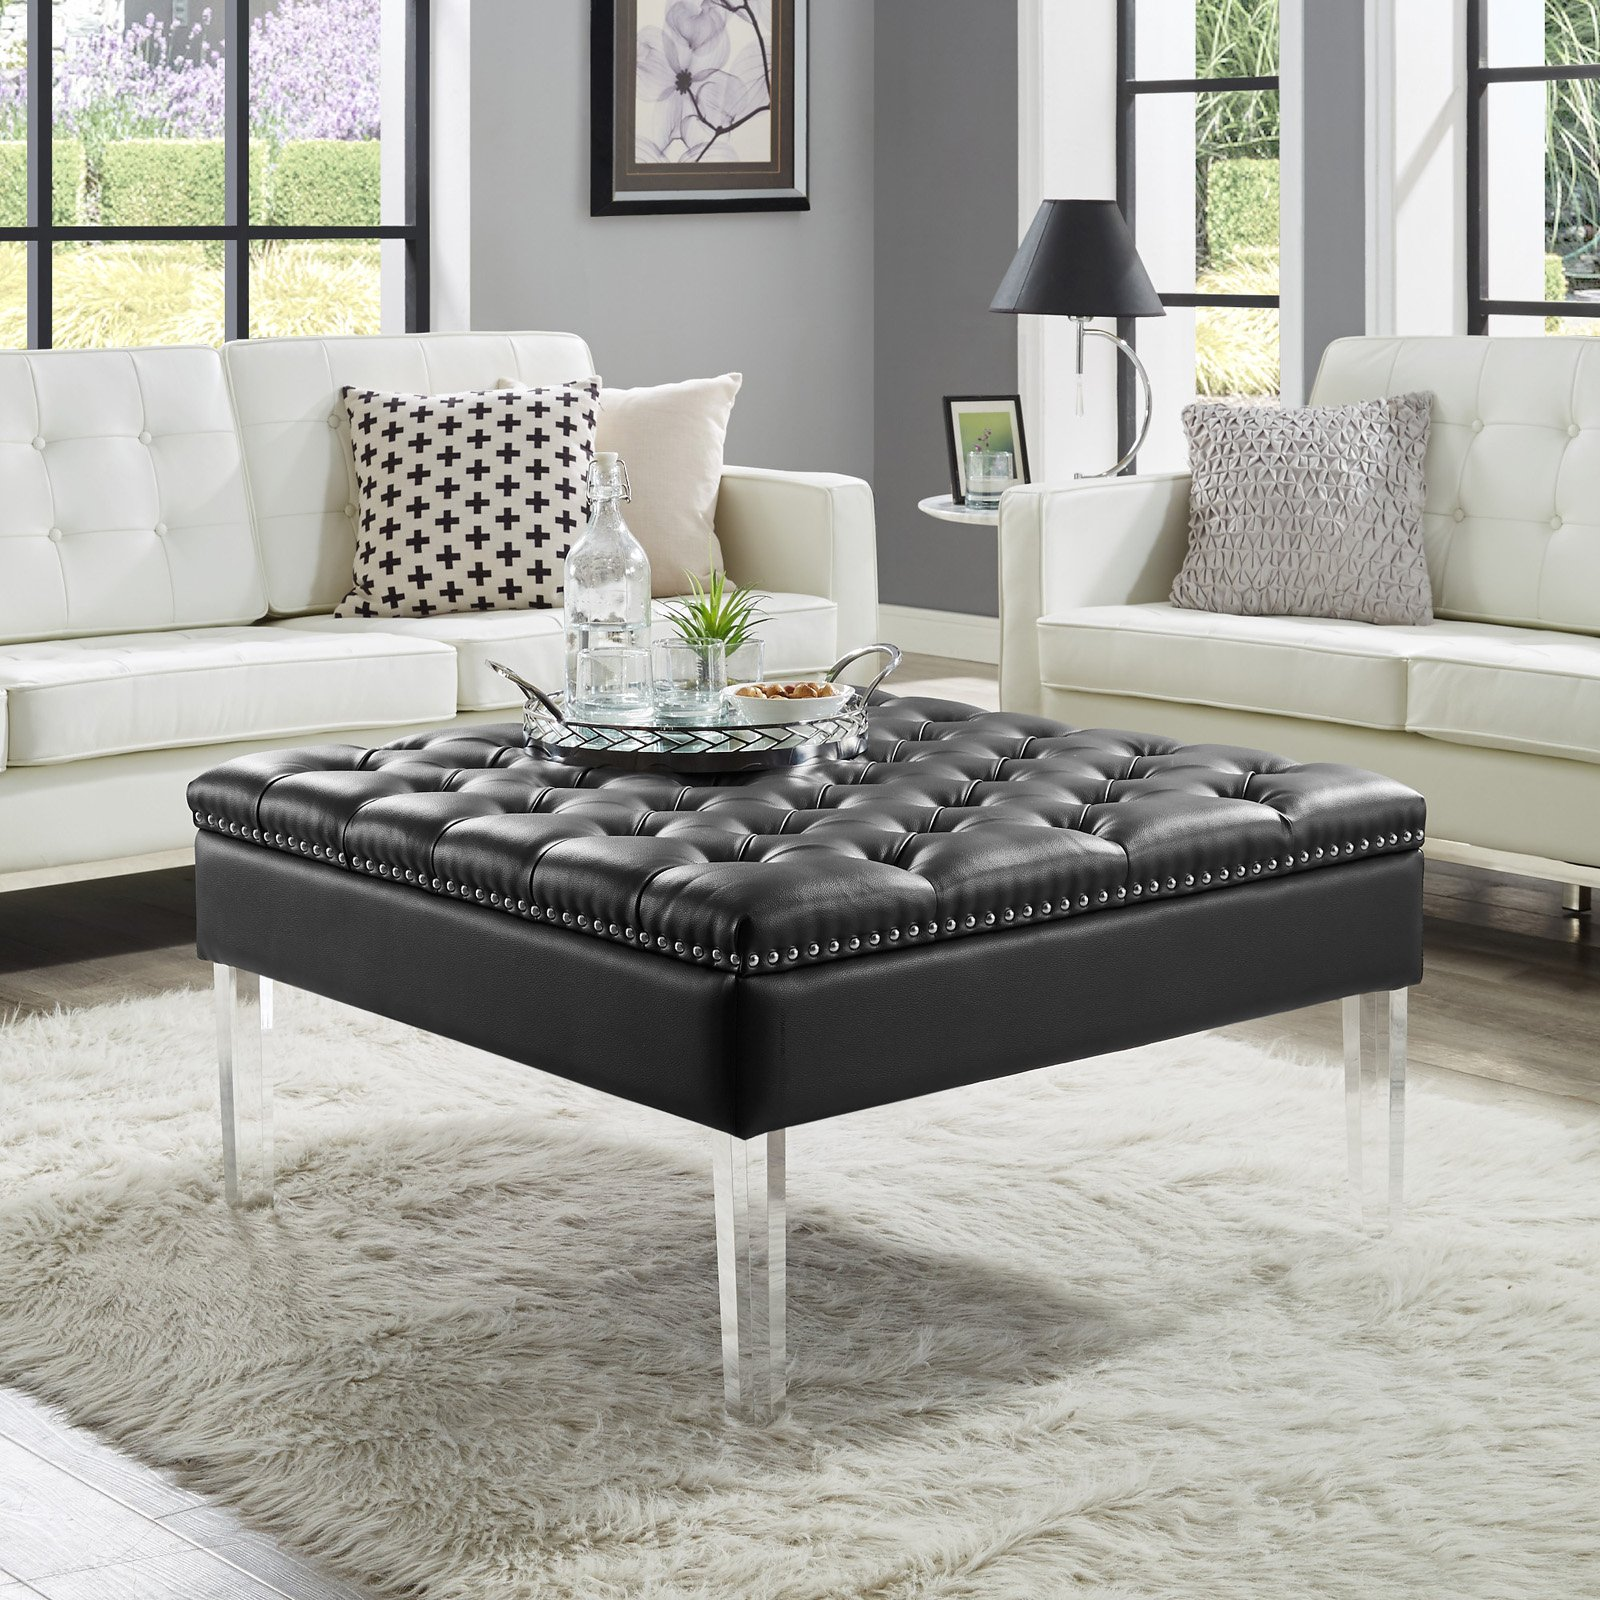 Magnificent Inspired Home Kayla Square Faux Leather Coffee Table Ottoman Camellatalisay Diy Chair Ideas Camellatalisaycom